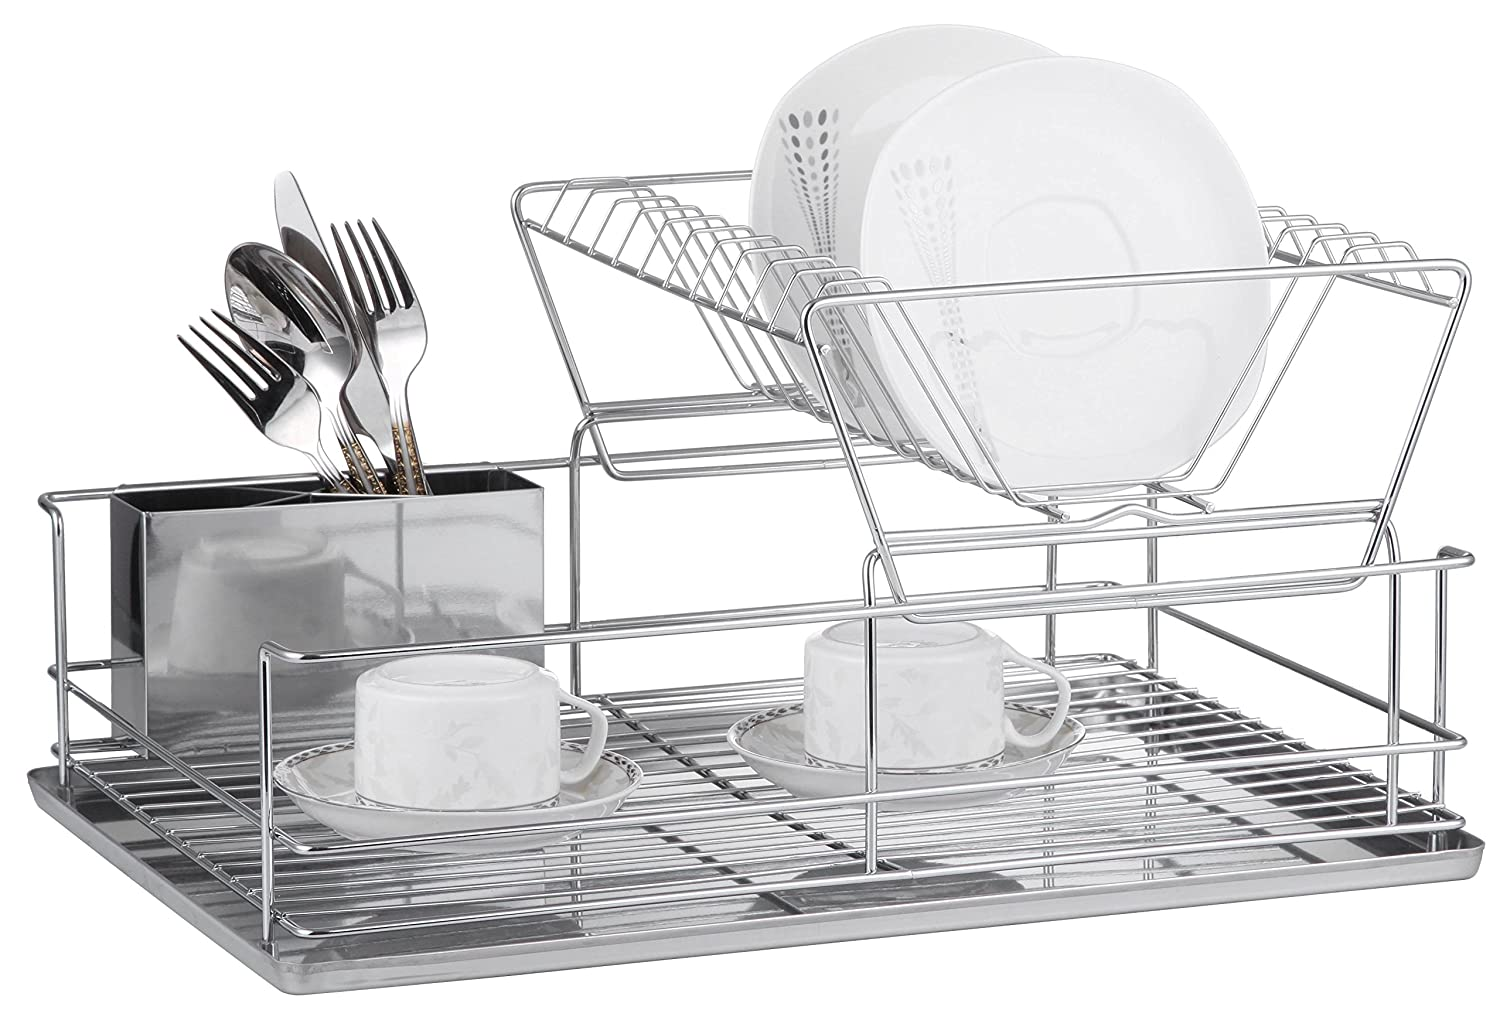 Superior Quality 2 Tier Chrome Plated Steel Kitchen Dish Rack with Utensil Holder